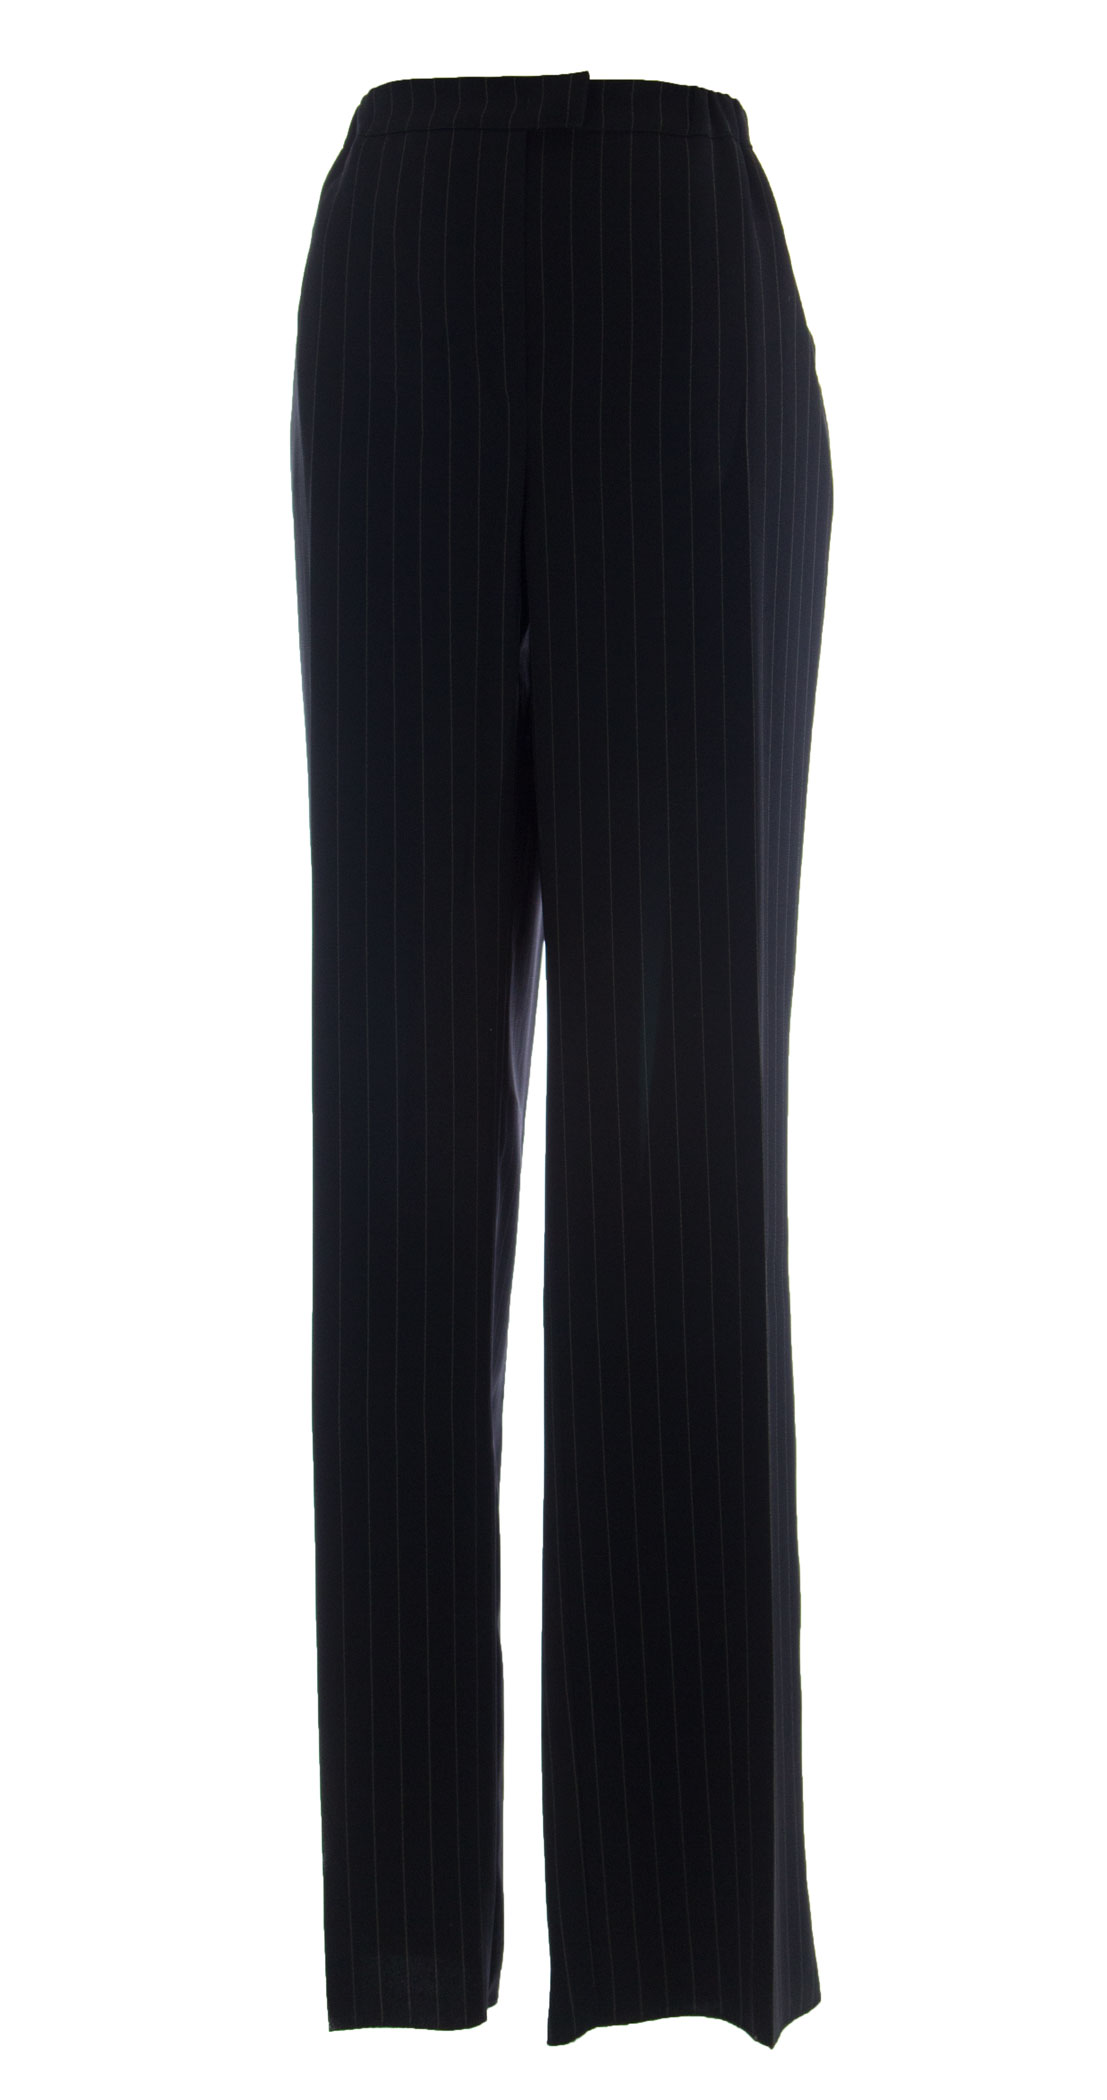 MARINA RINALDI by MaxMara Ex-Harv Midnight bluee Striped Dress Pants  12W   21